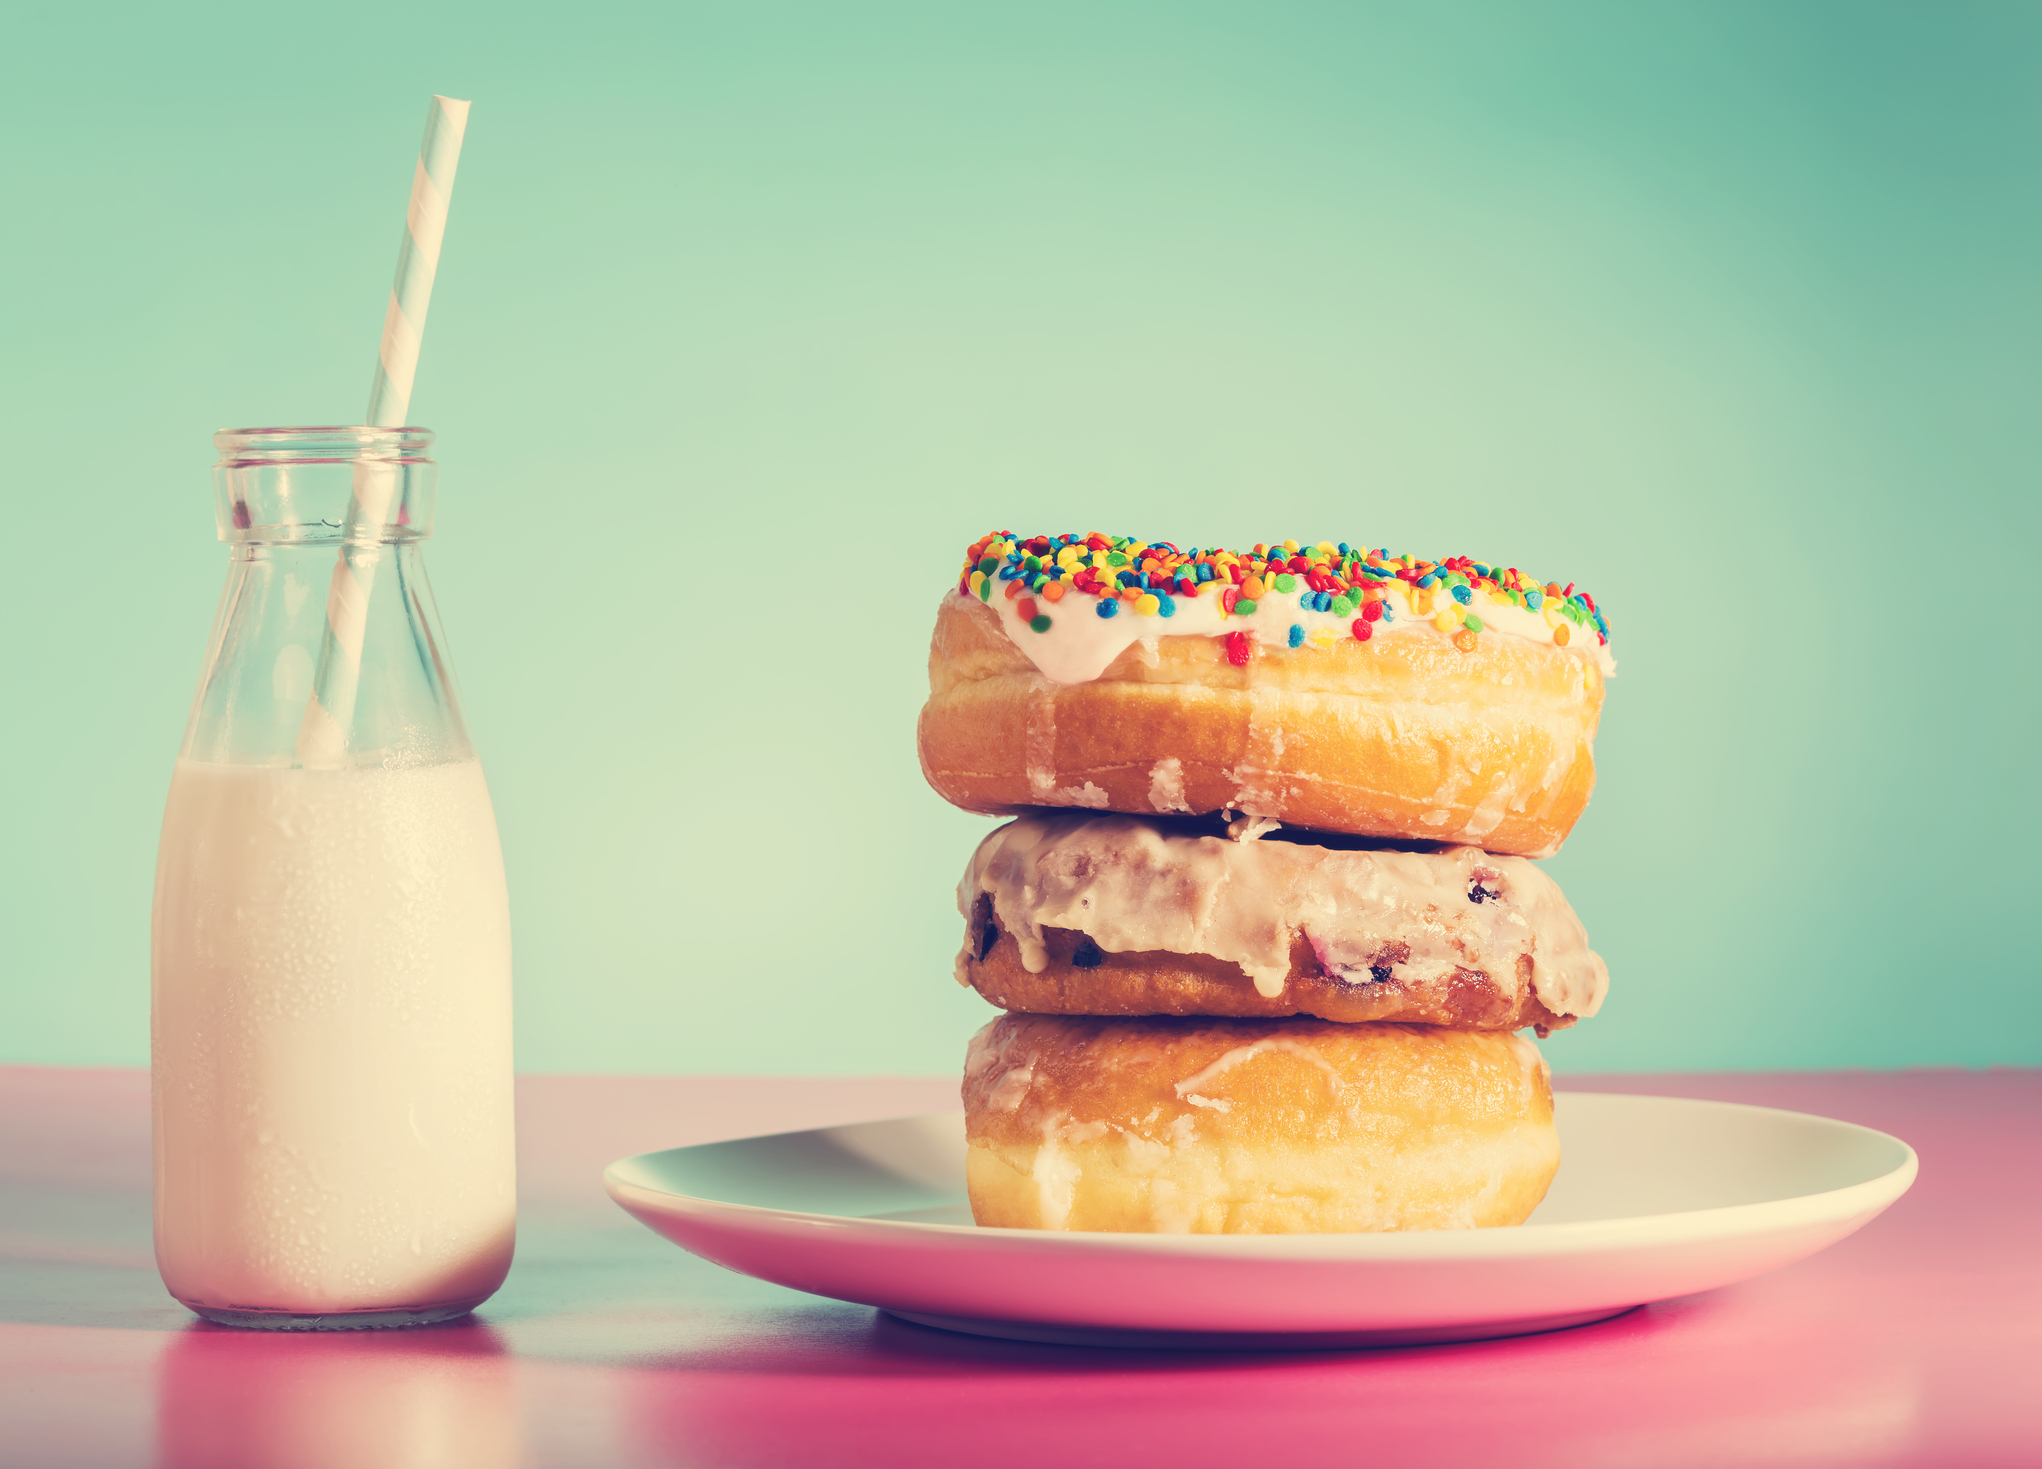 Which Sugar Is Causing My Upset Stomach? Lactose or Sucrose?